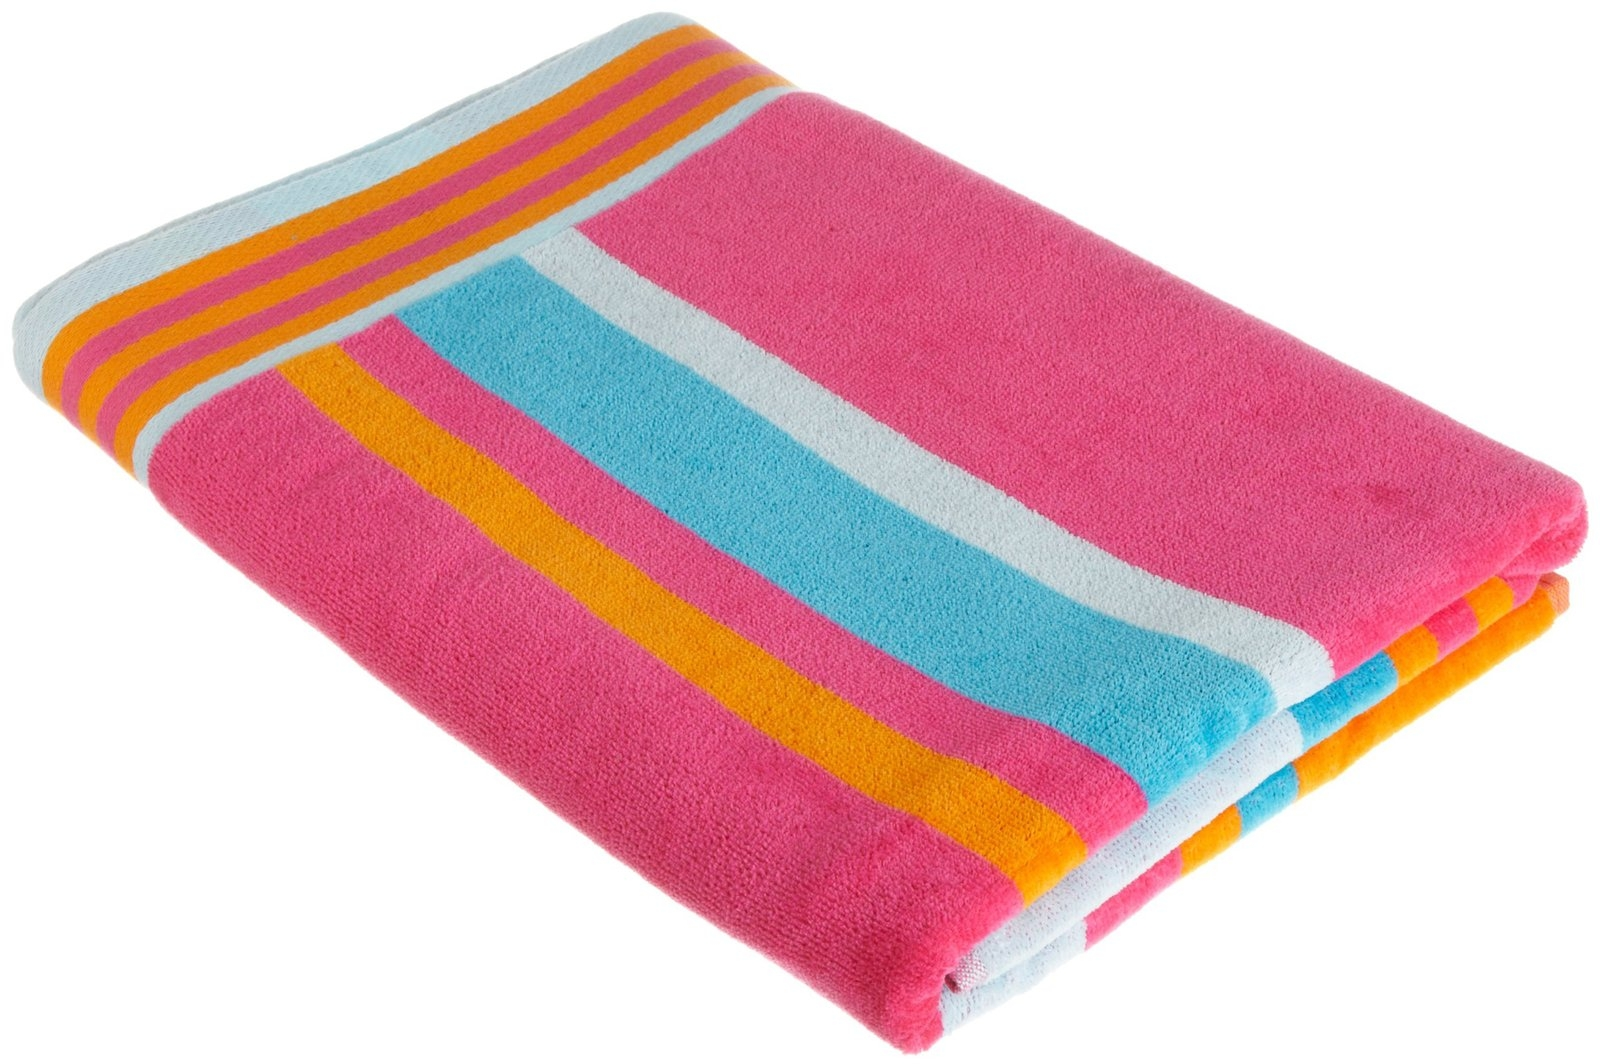 Towel clipart. New gallery digital collection